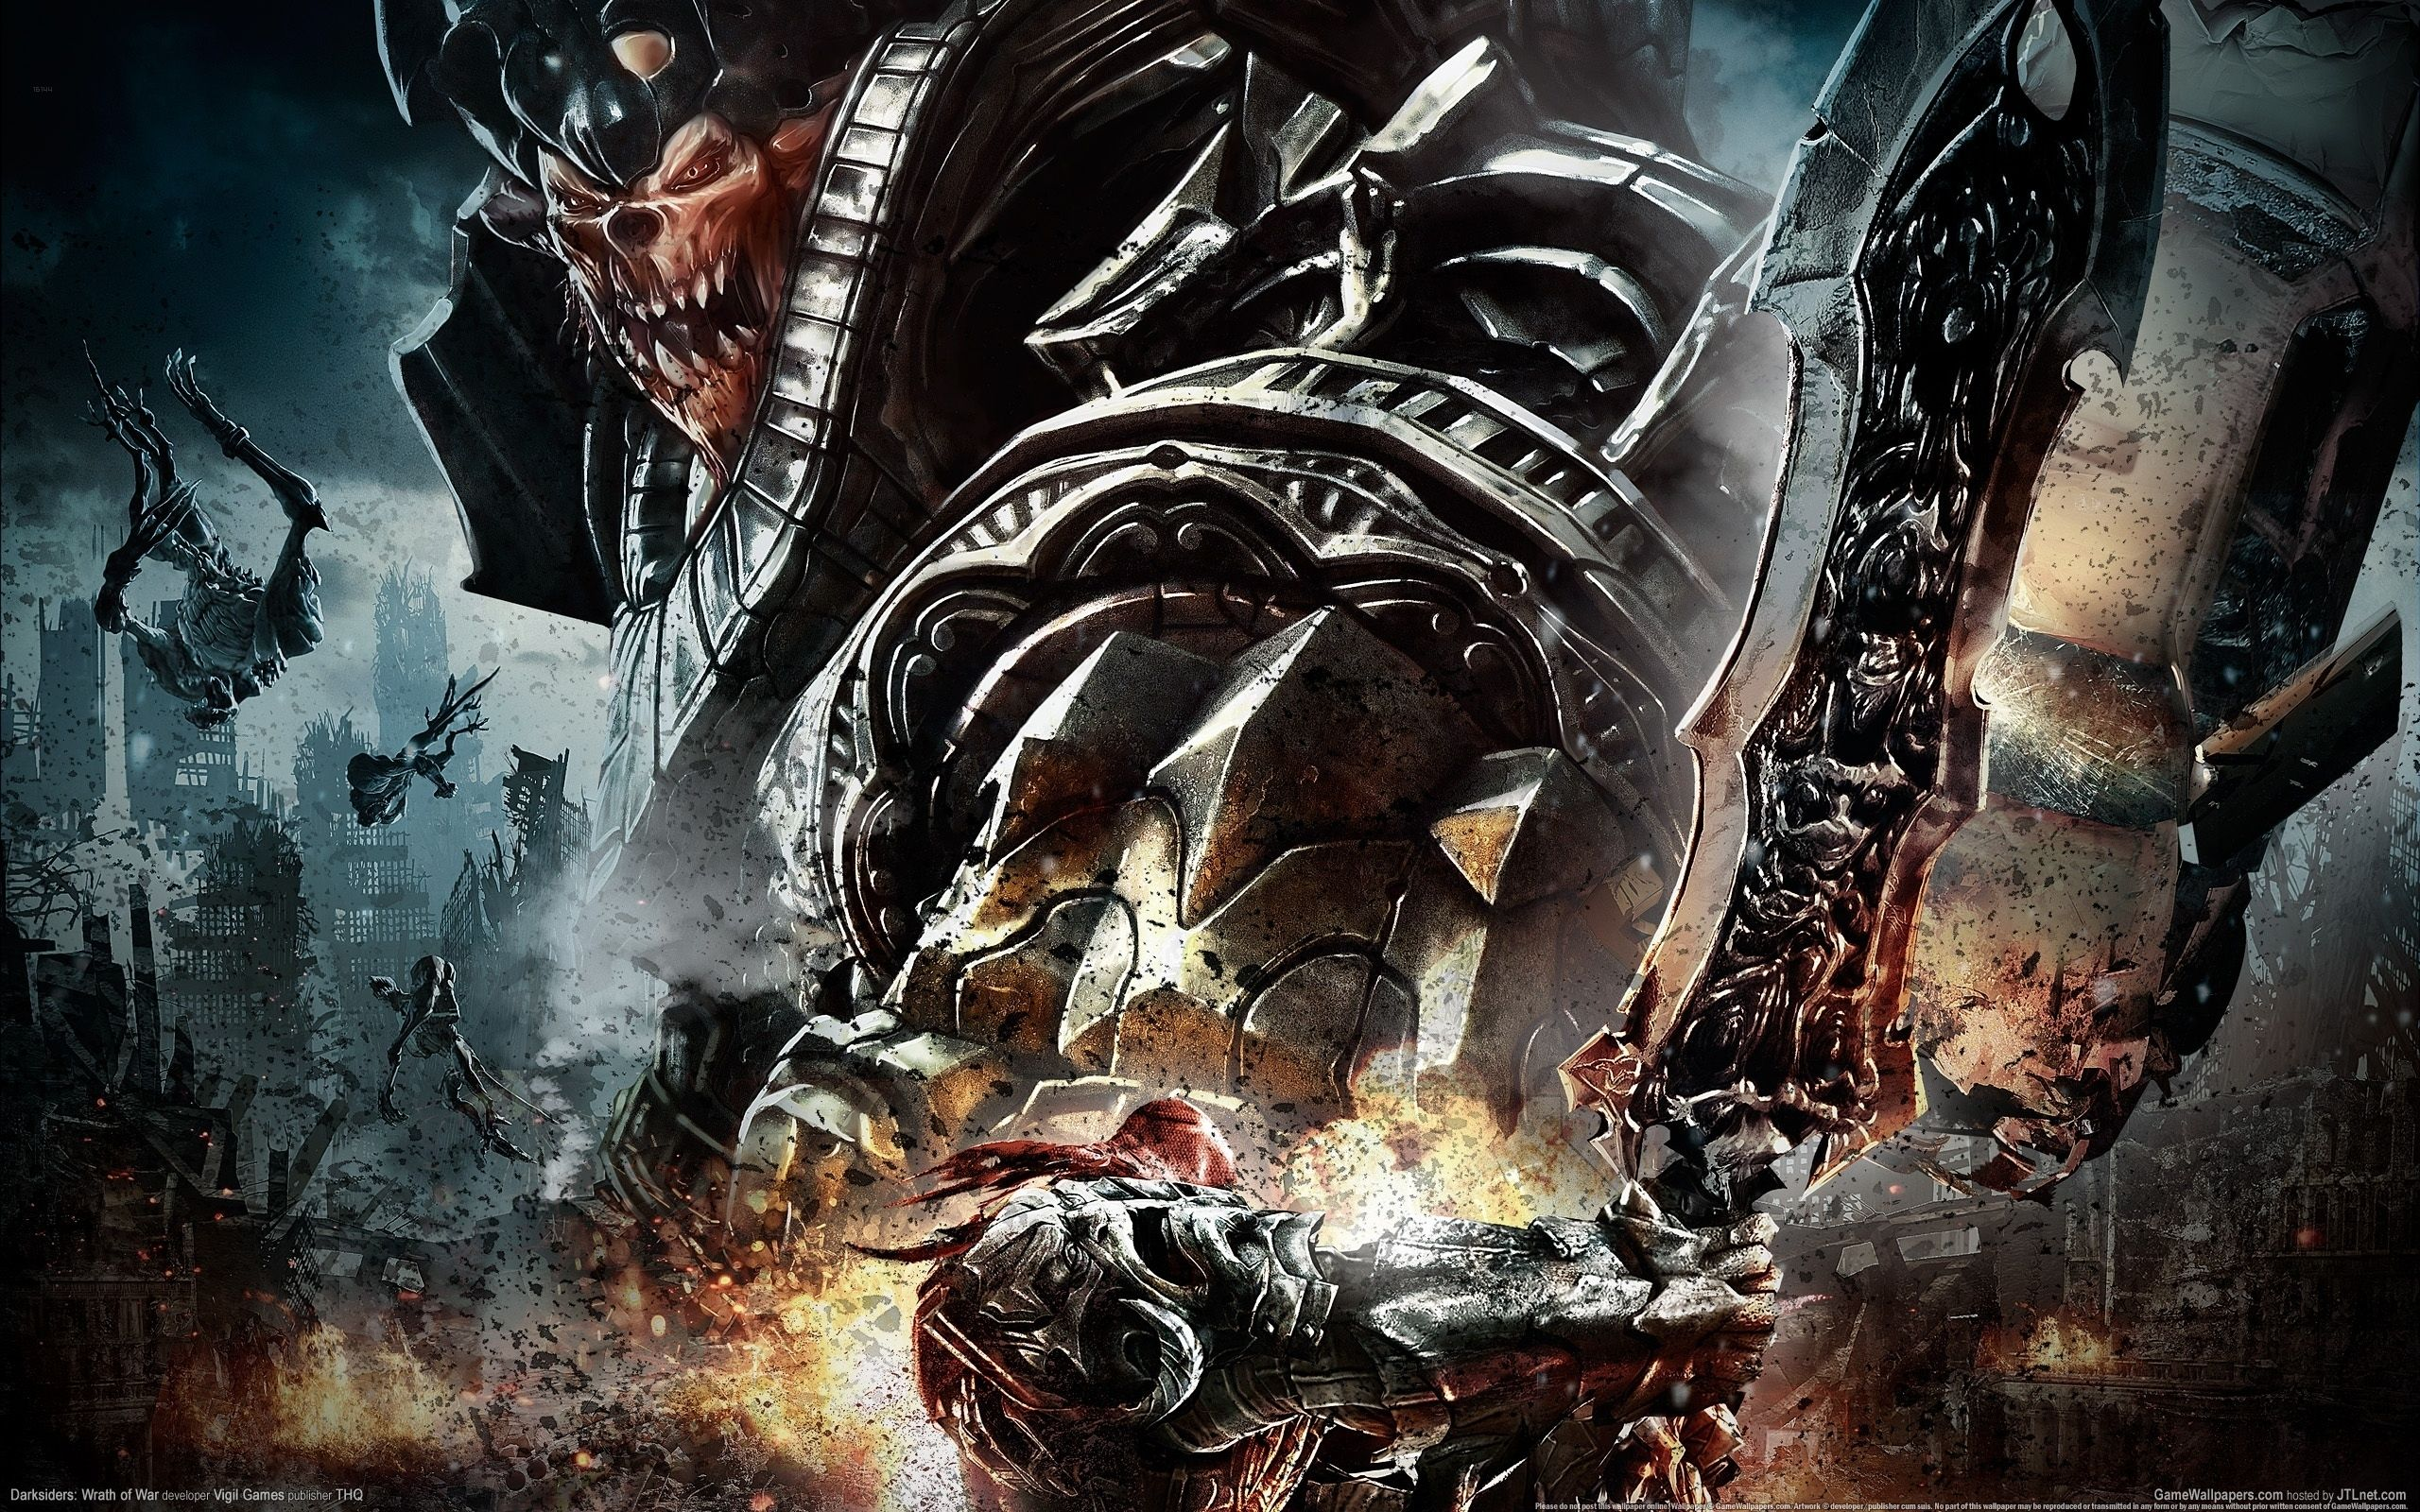 darksiders images darksiders death wallpaper hd wallpaper and | hd